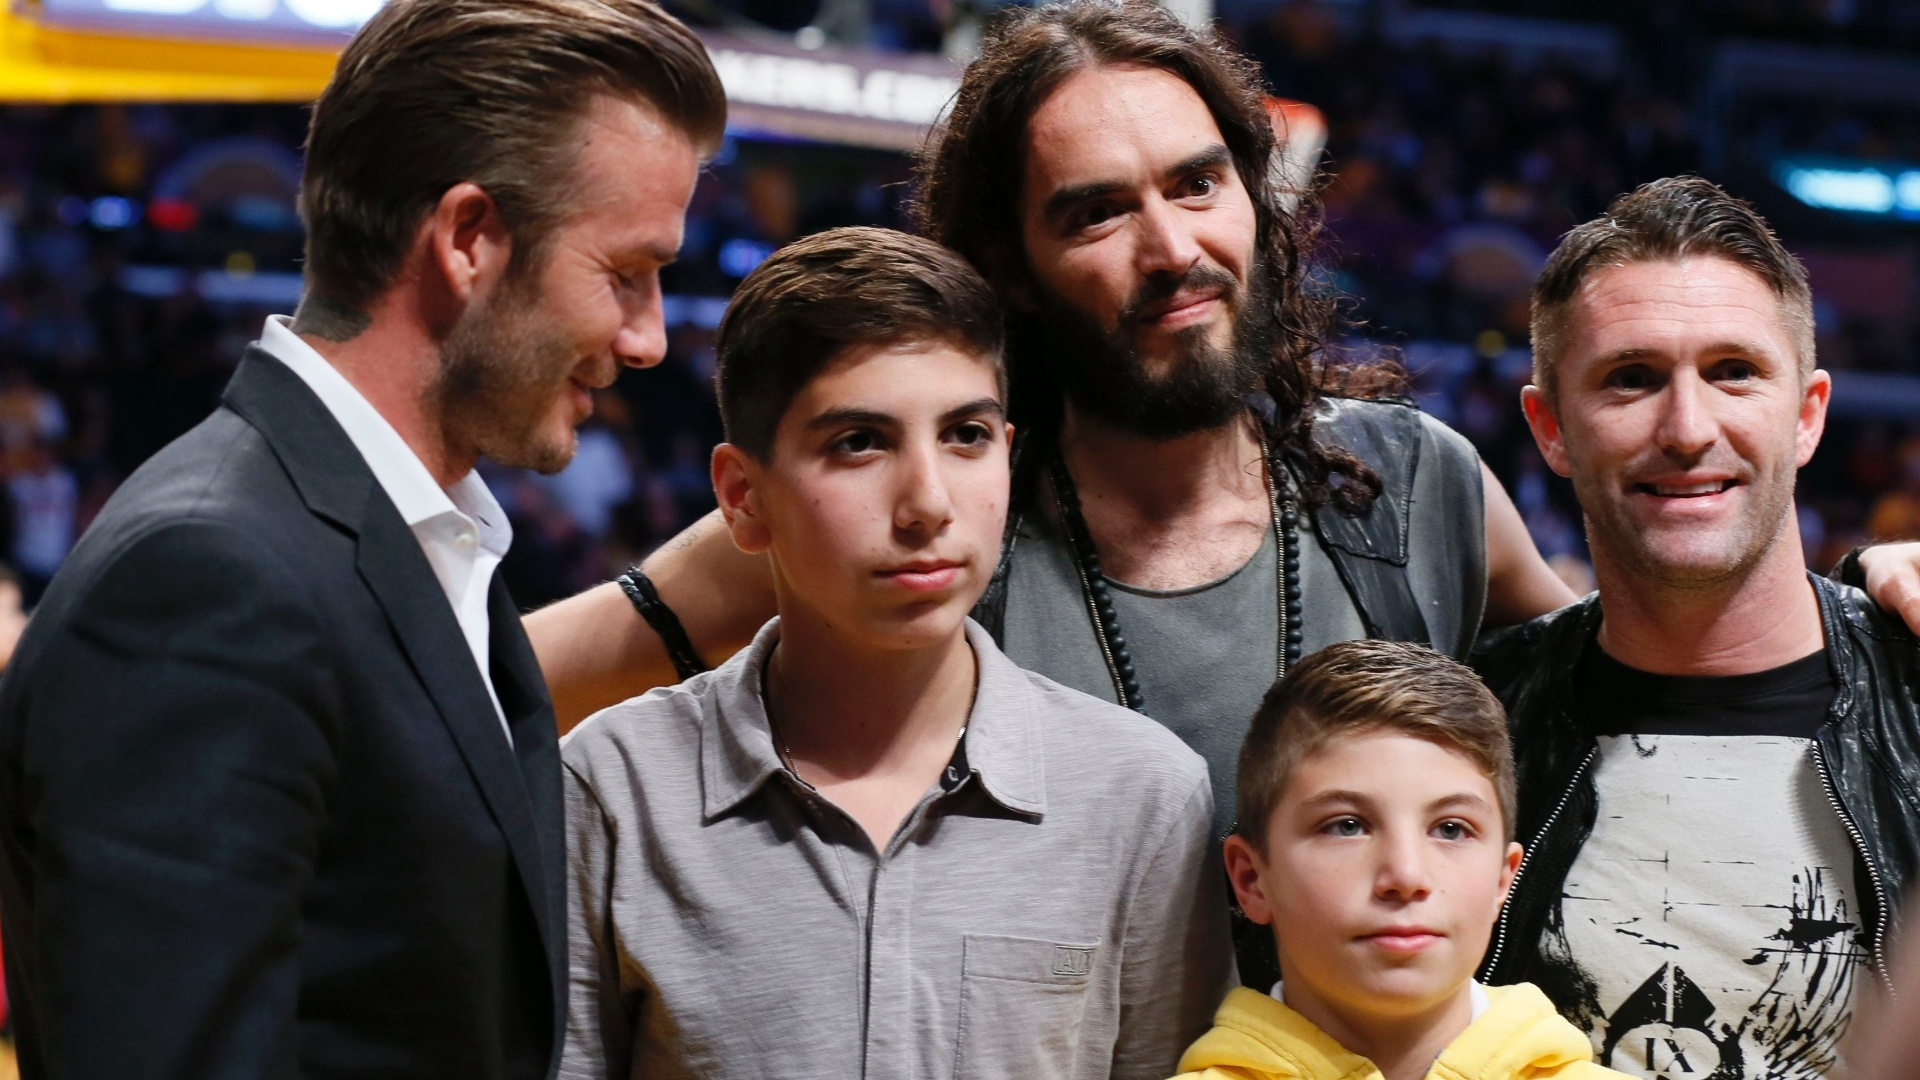 David Beckham e o ator Russell Brand posam para fotos durante o jogo entre Los Angeles Lakers e Dallas Mavericks (30/10/12)